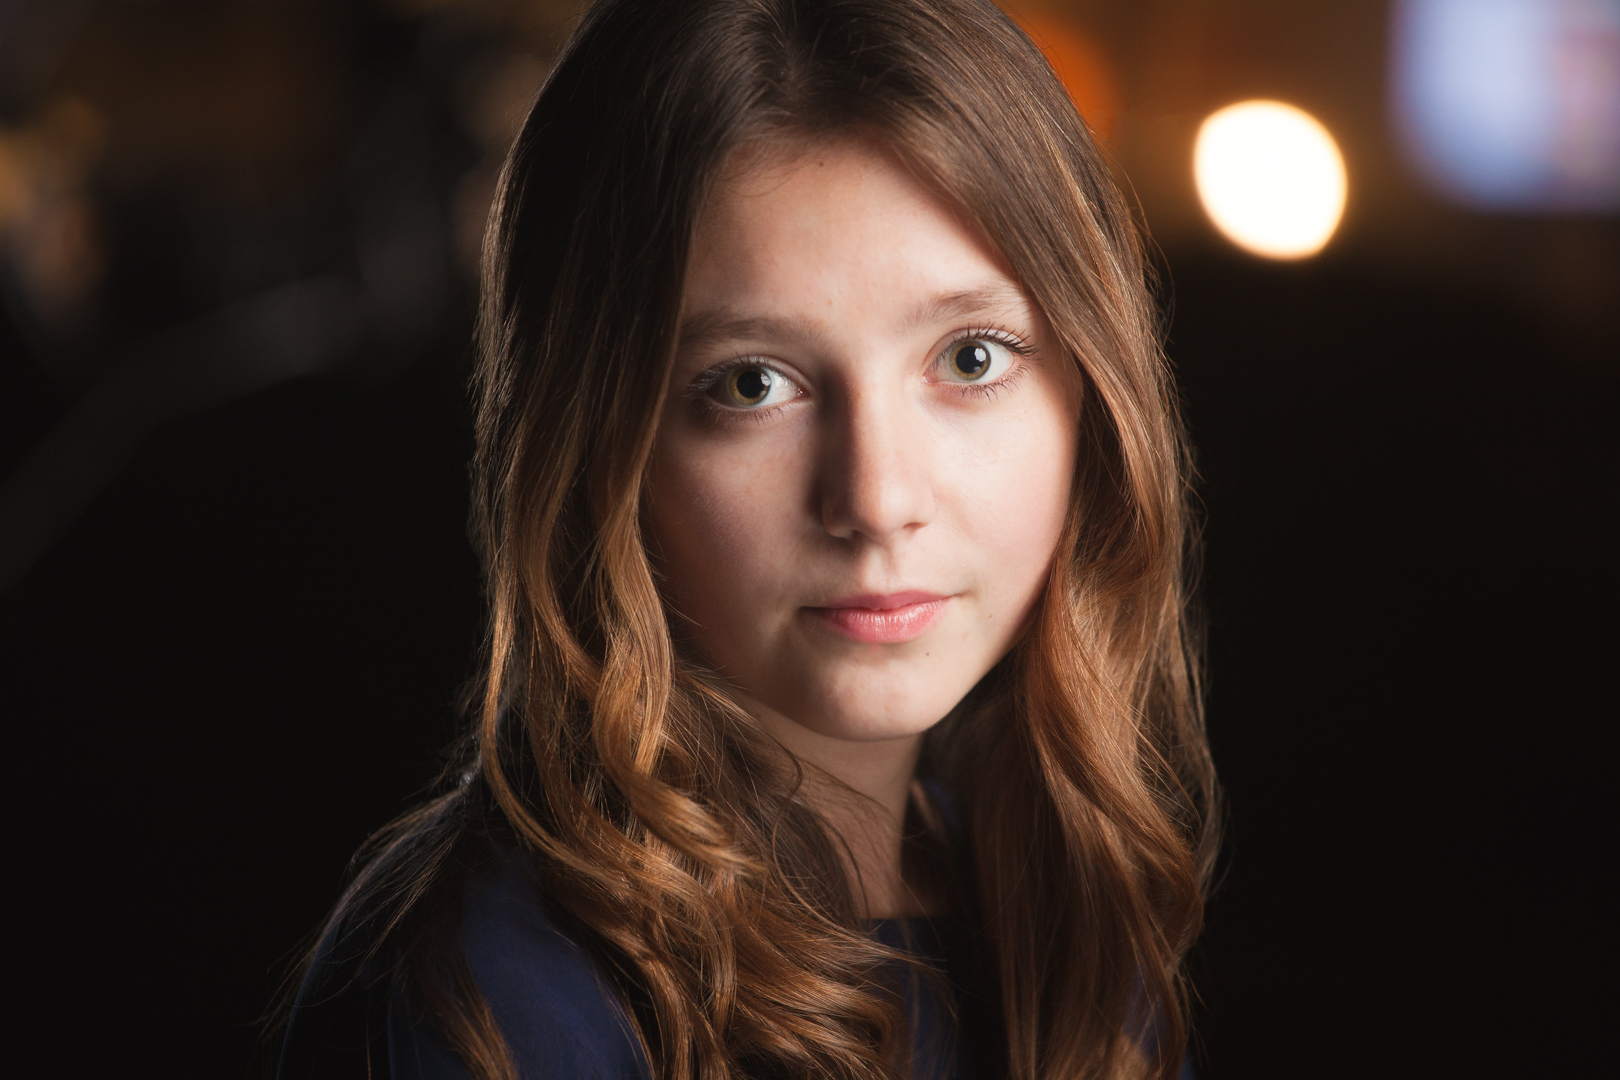 Youth Headshot-7.jpg